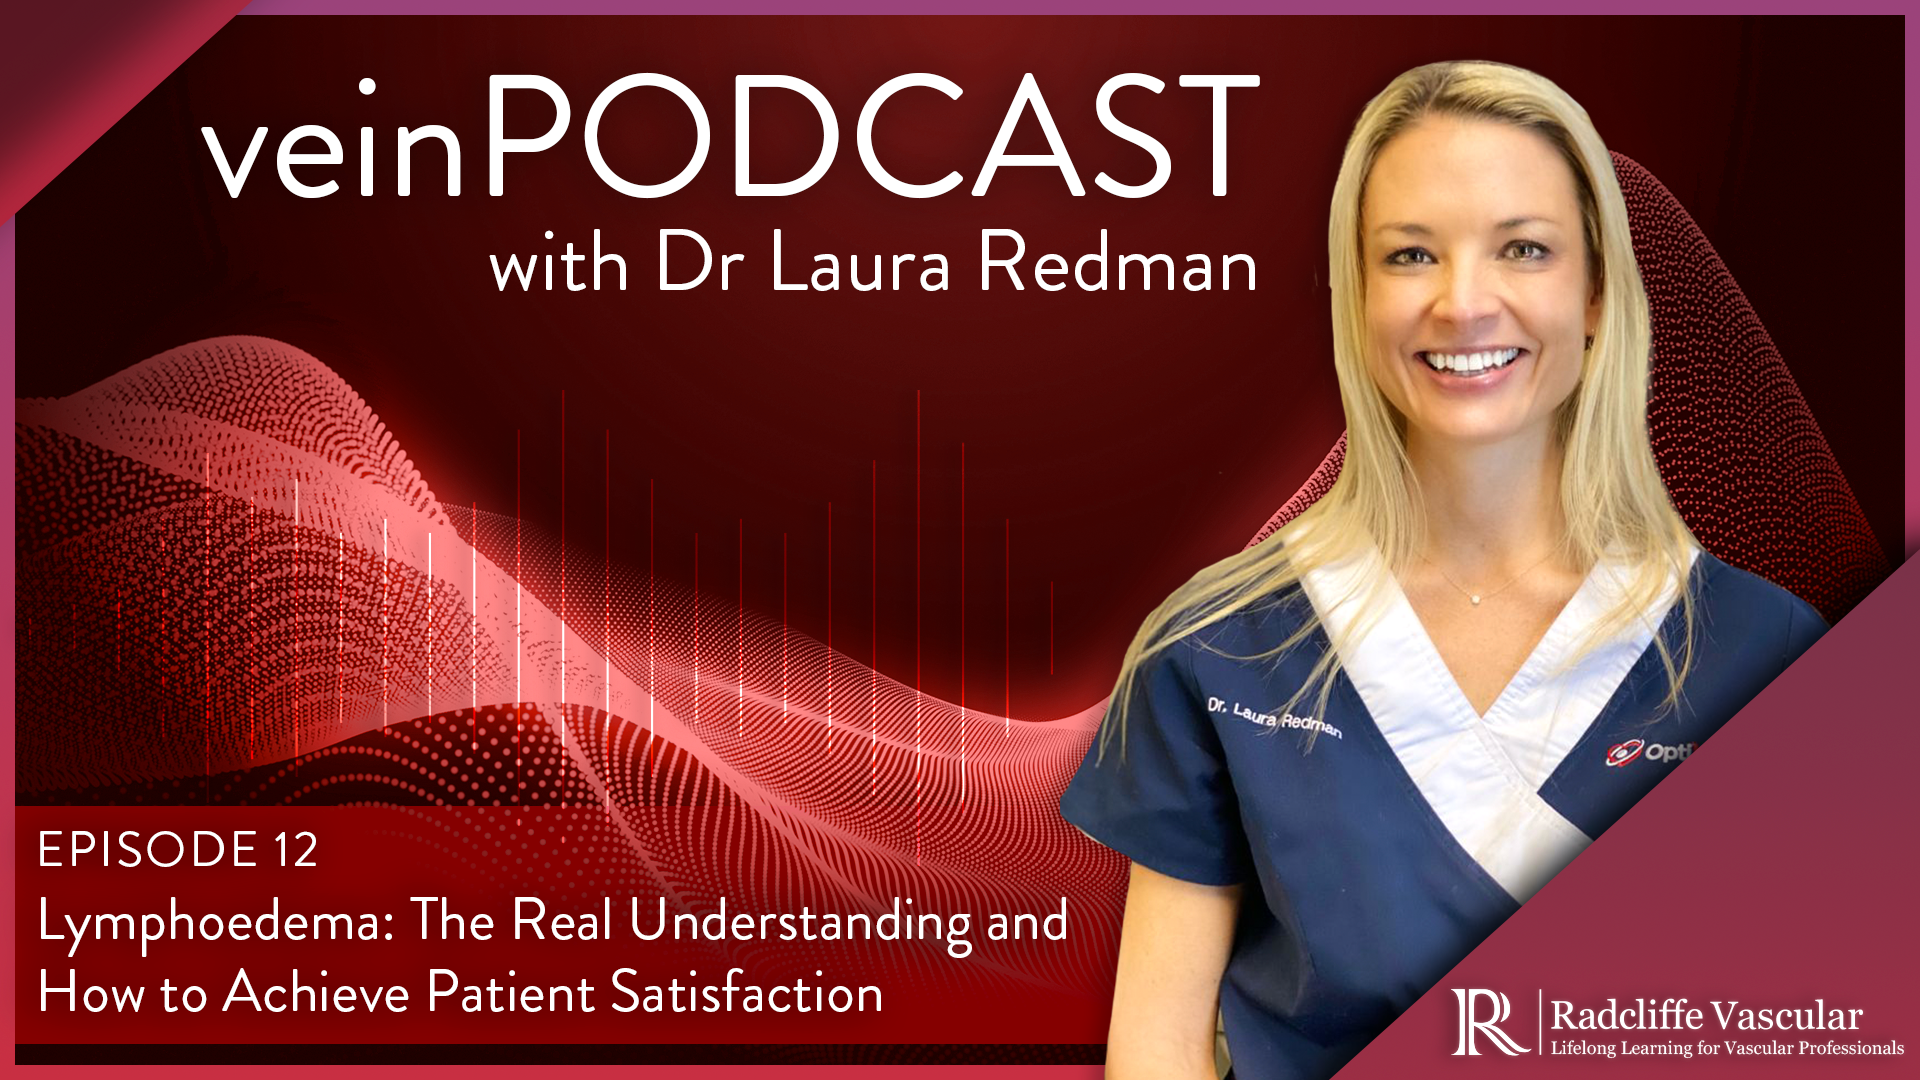 veinPodcast - Ep 12 - Lymphoedema: The Real Understanding and How to Achieve Patient Satisfaction